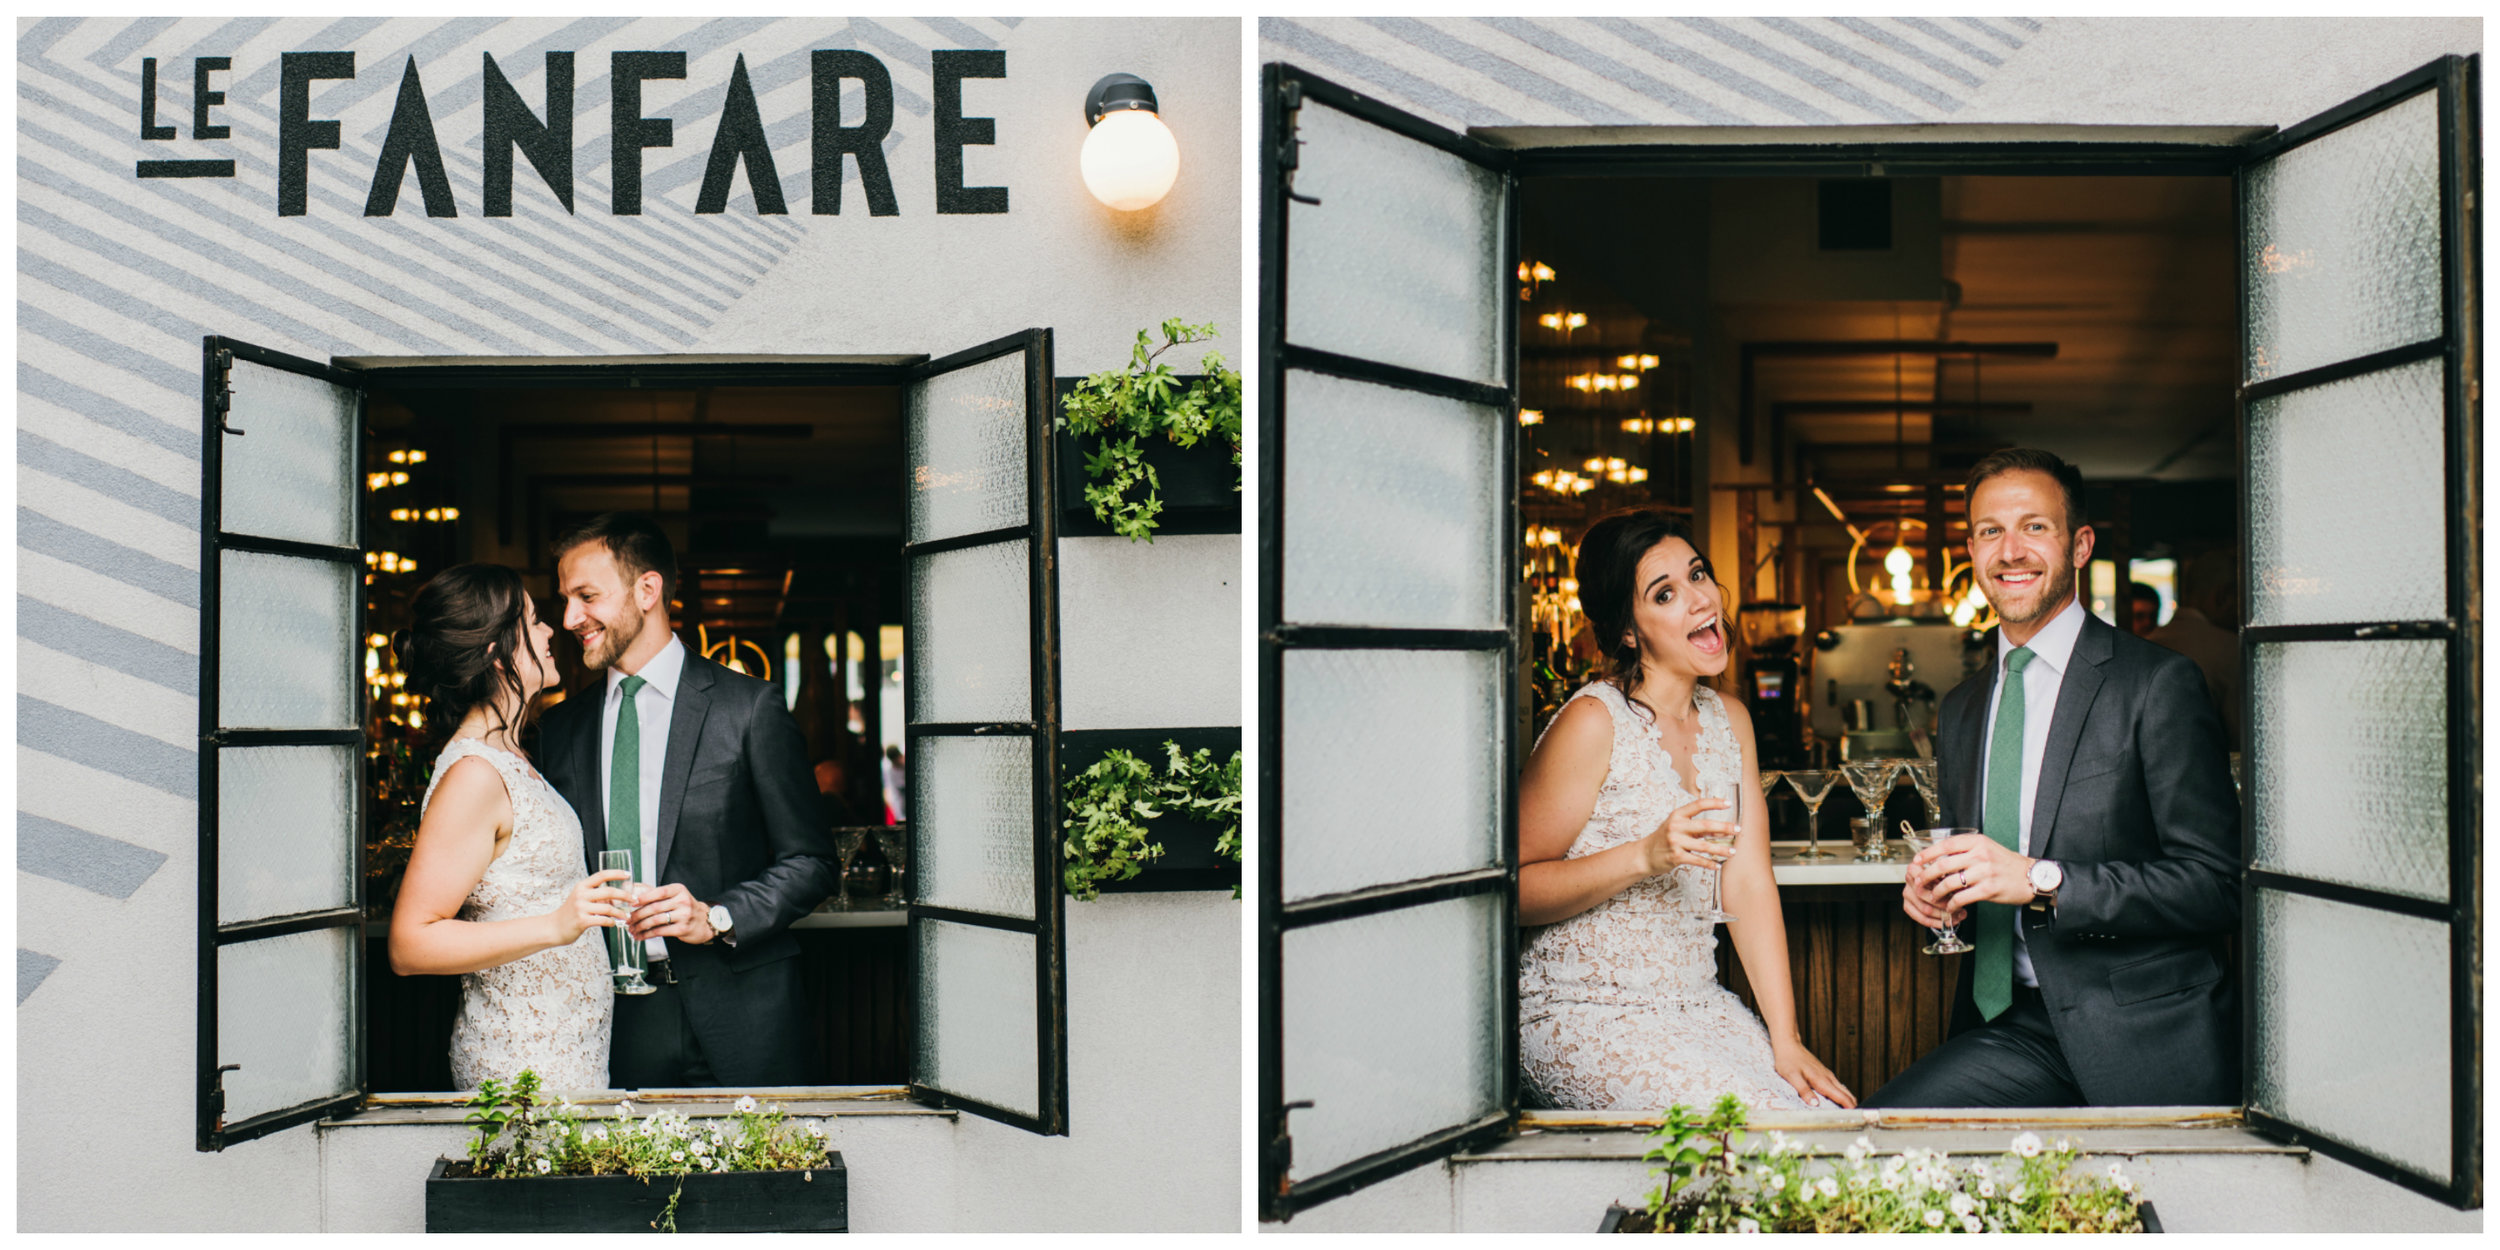 LE FANFARE- NYC INTIMATE WEDDING PHOTOGRAPHER - CHI-CHI ARI 19.jpg